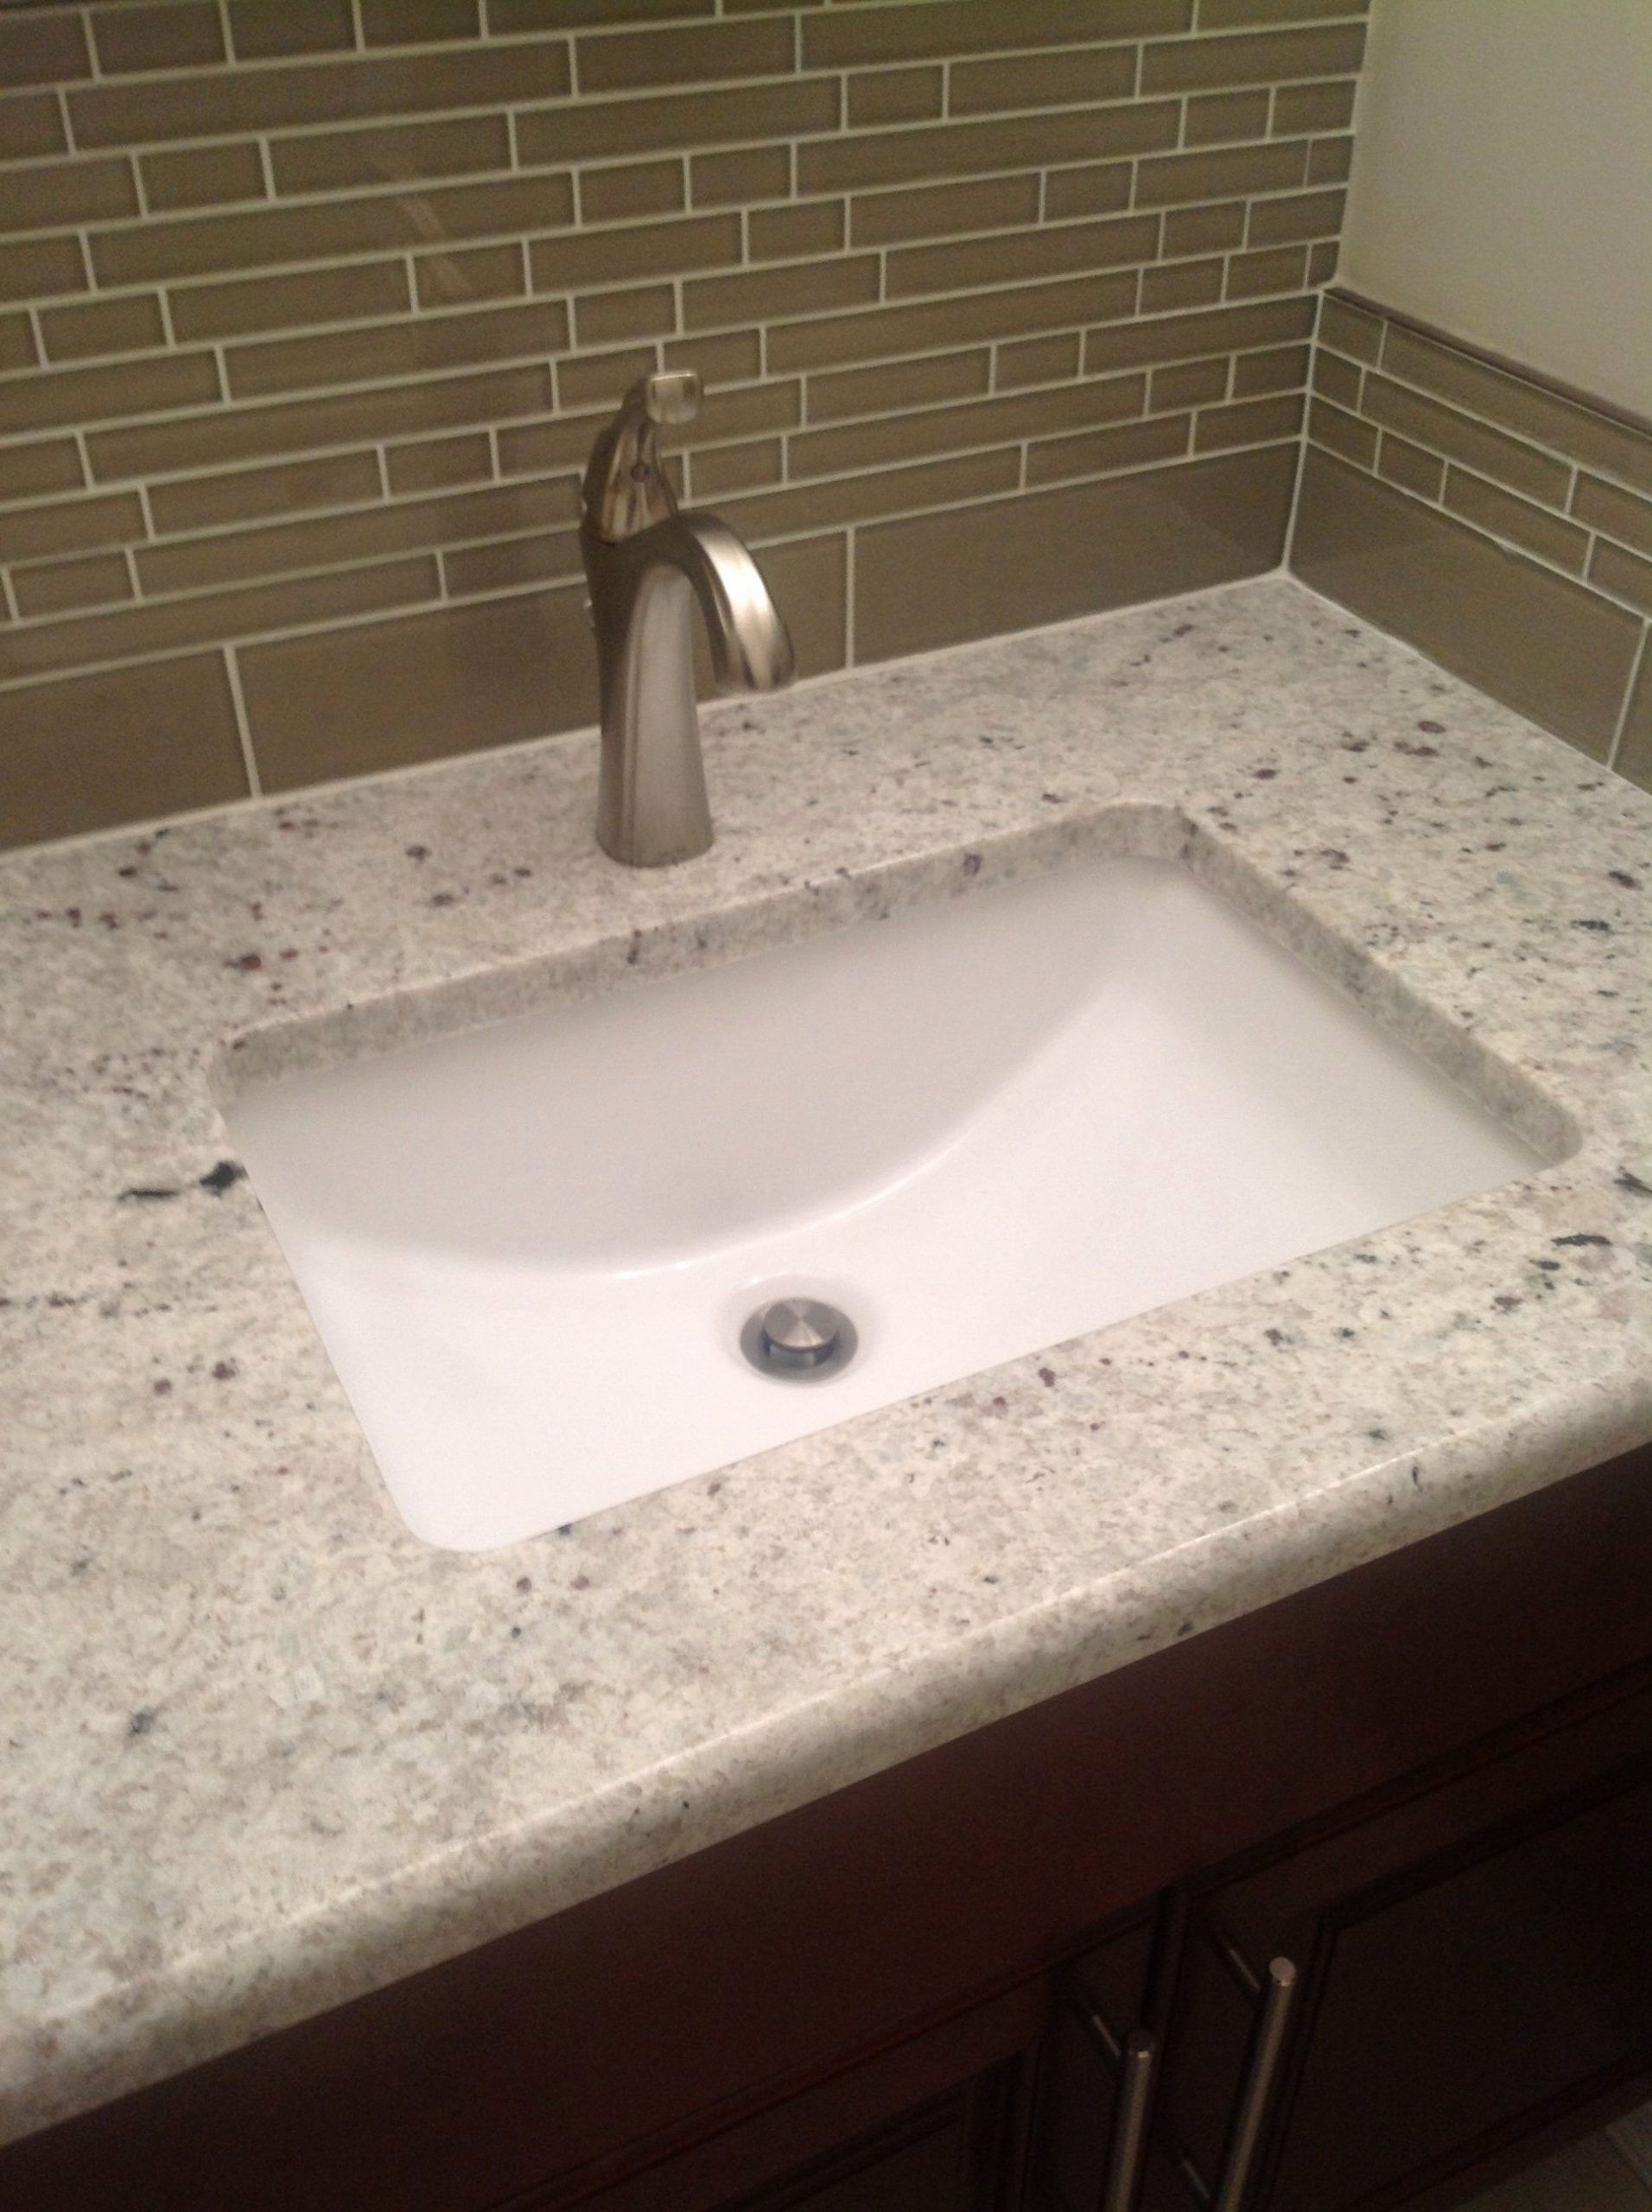 Small Rectangle Bathroom Sink Awesome Bathroom Update Rectangle Undermount Sink Brushed Nickel In 2020 Undermount Bathroom Sink Small Undermount Bathroom Sink Sink